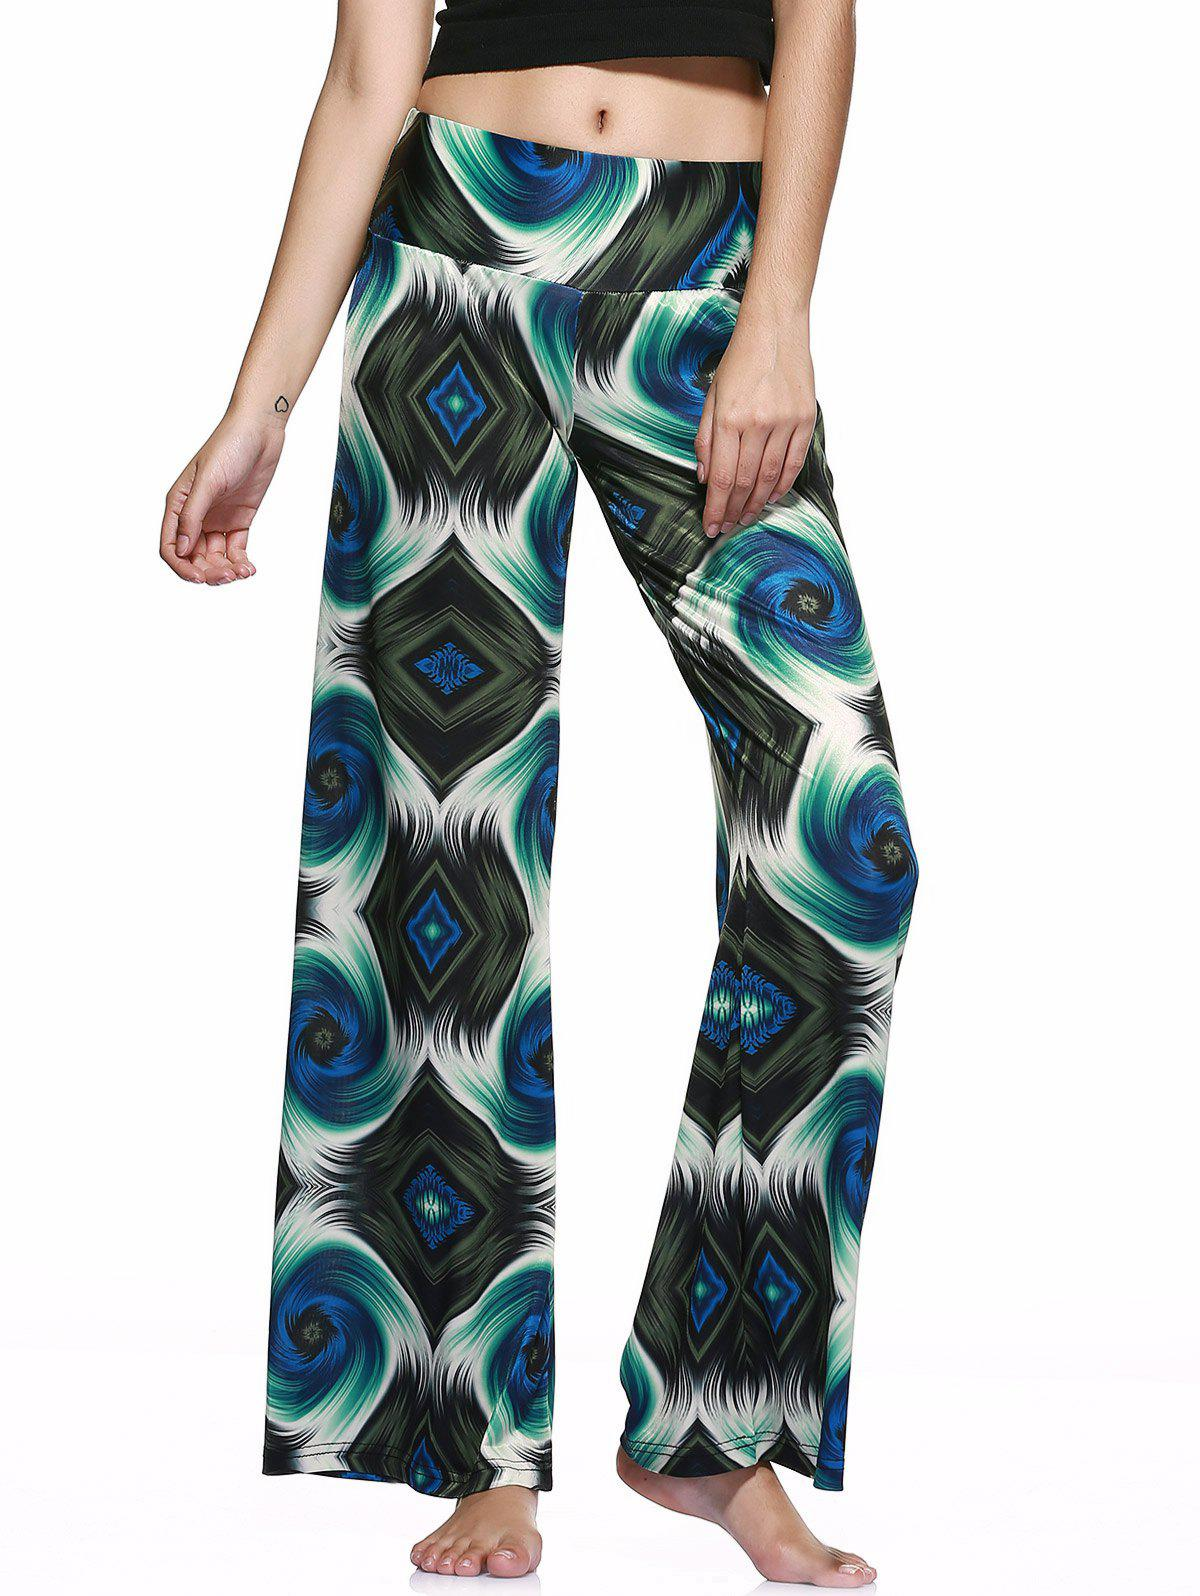 Casual Style Elastic Waist Printed Loose-Fitting Pants For Women